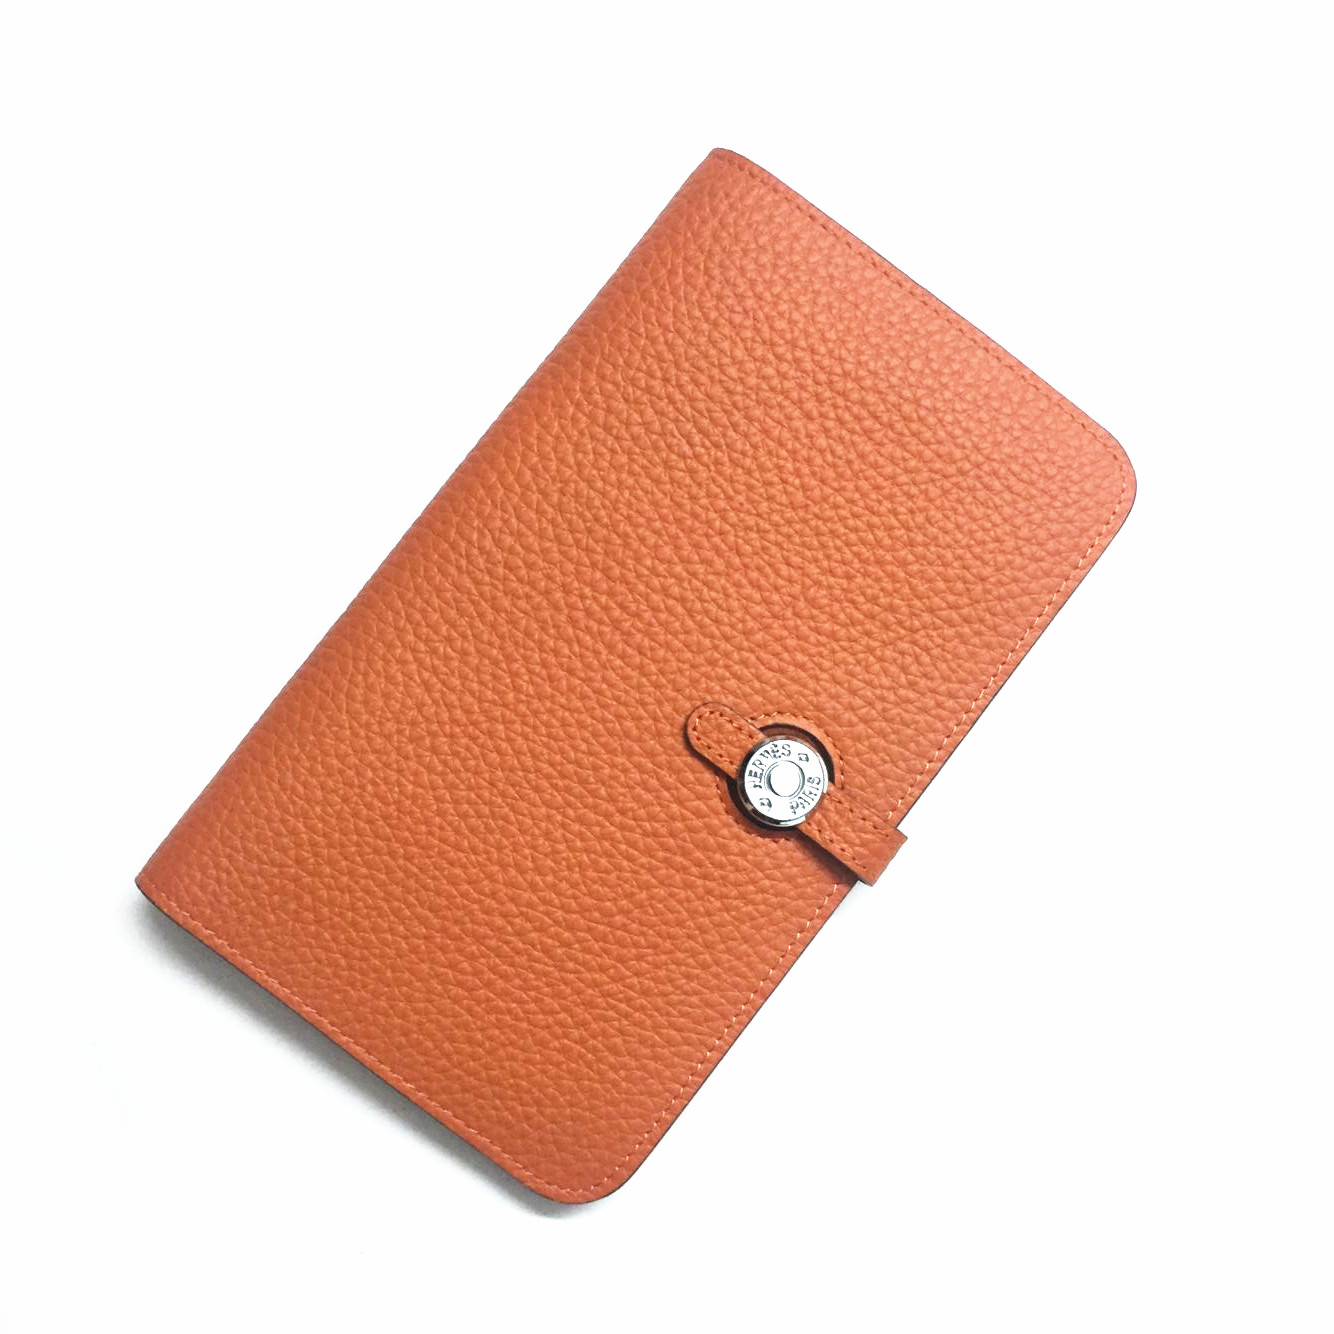 Hermes Dogon Wallet Togo Leather H001 Orange